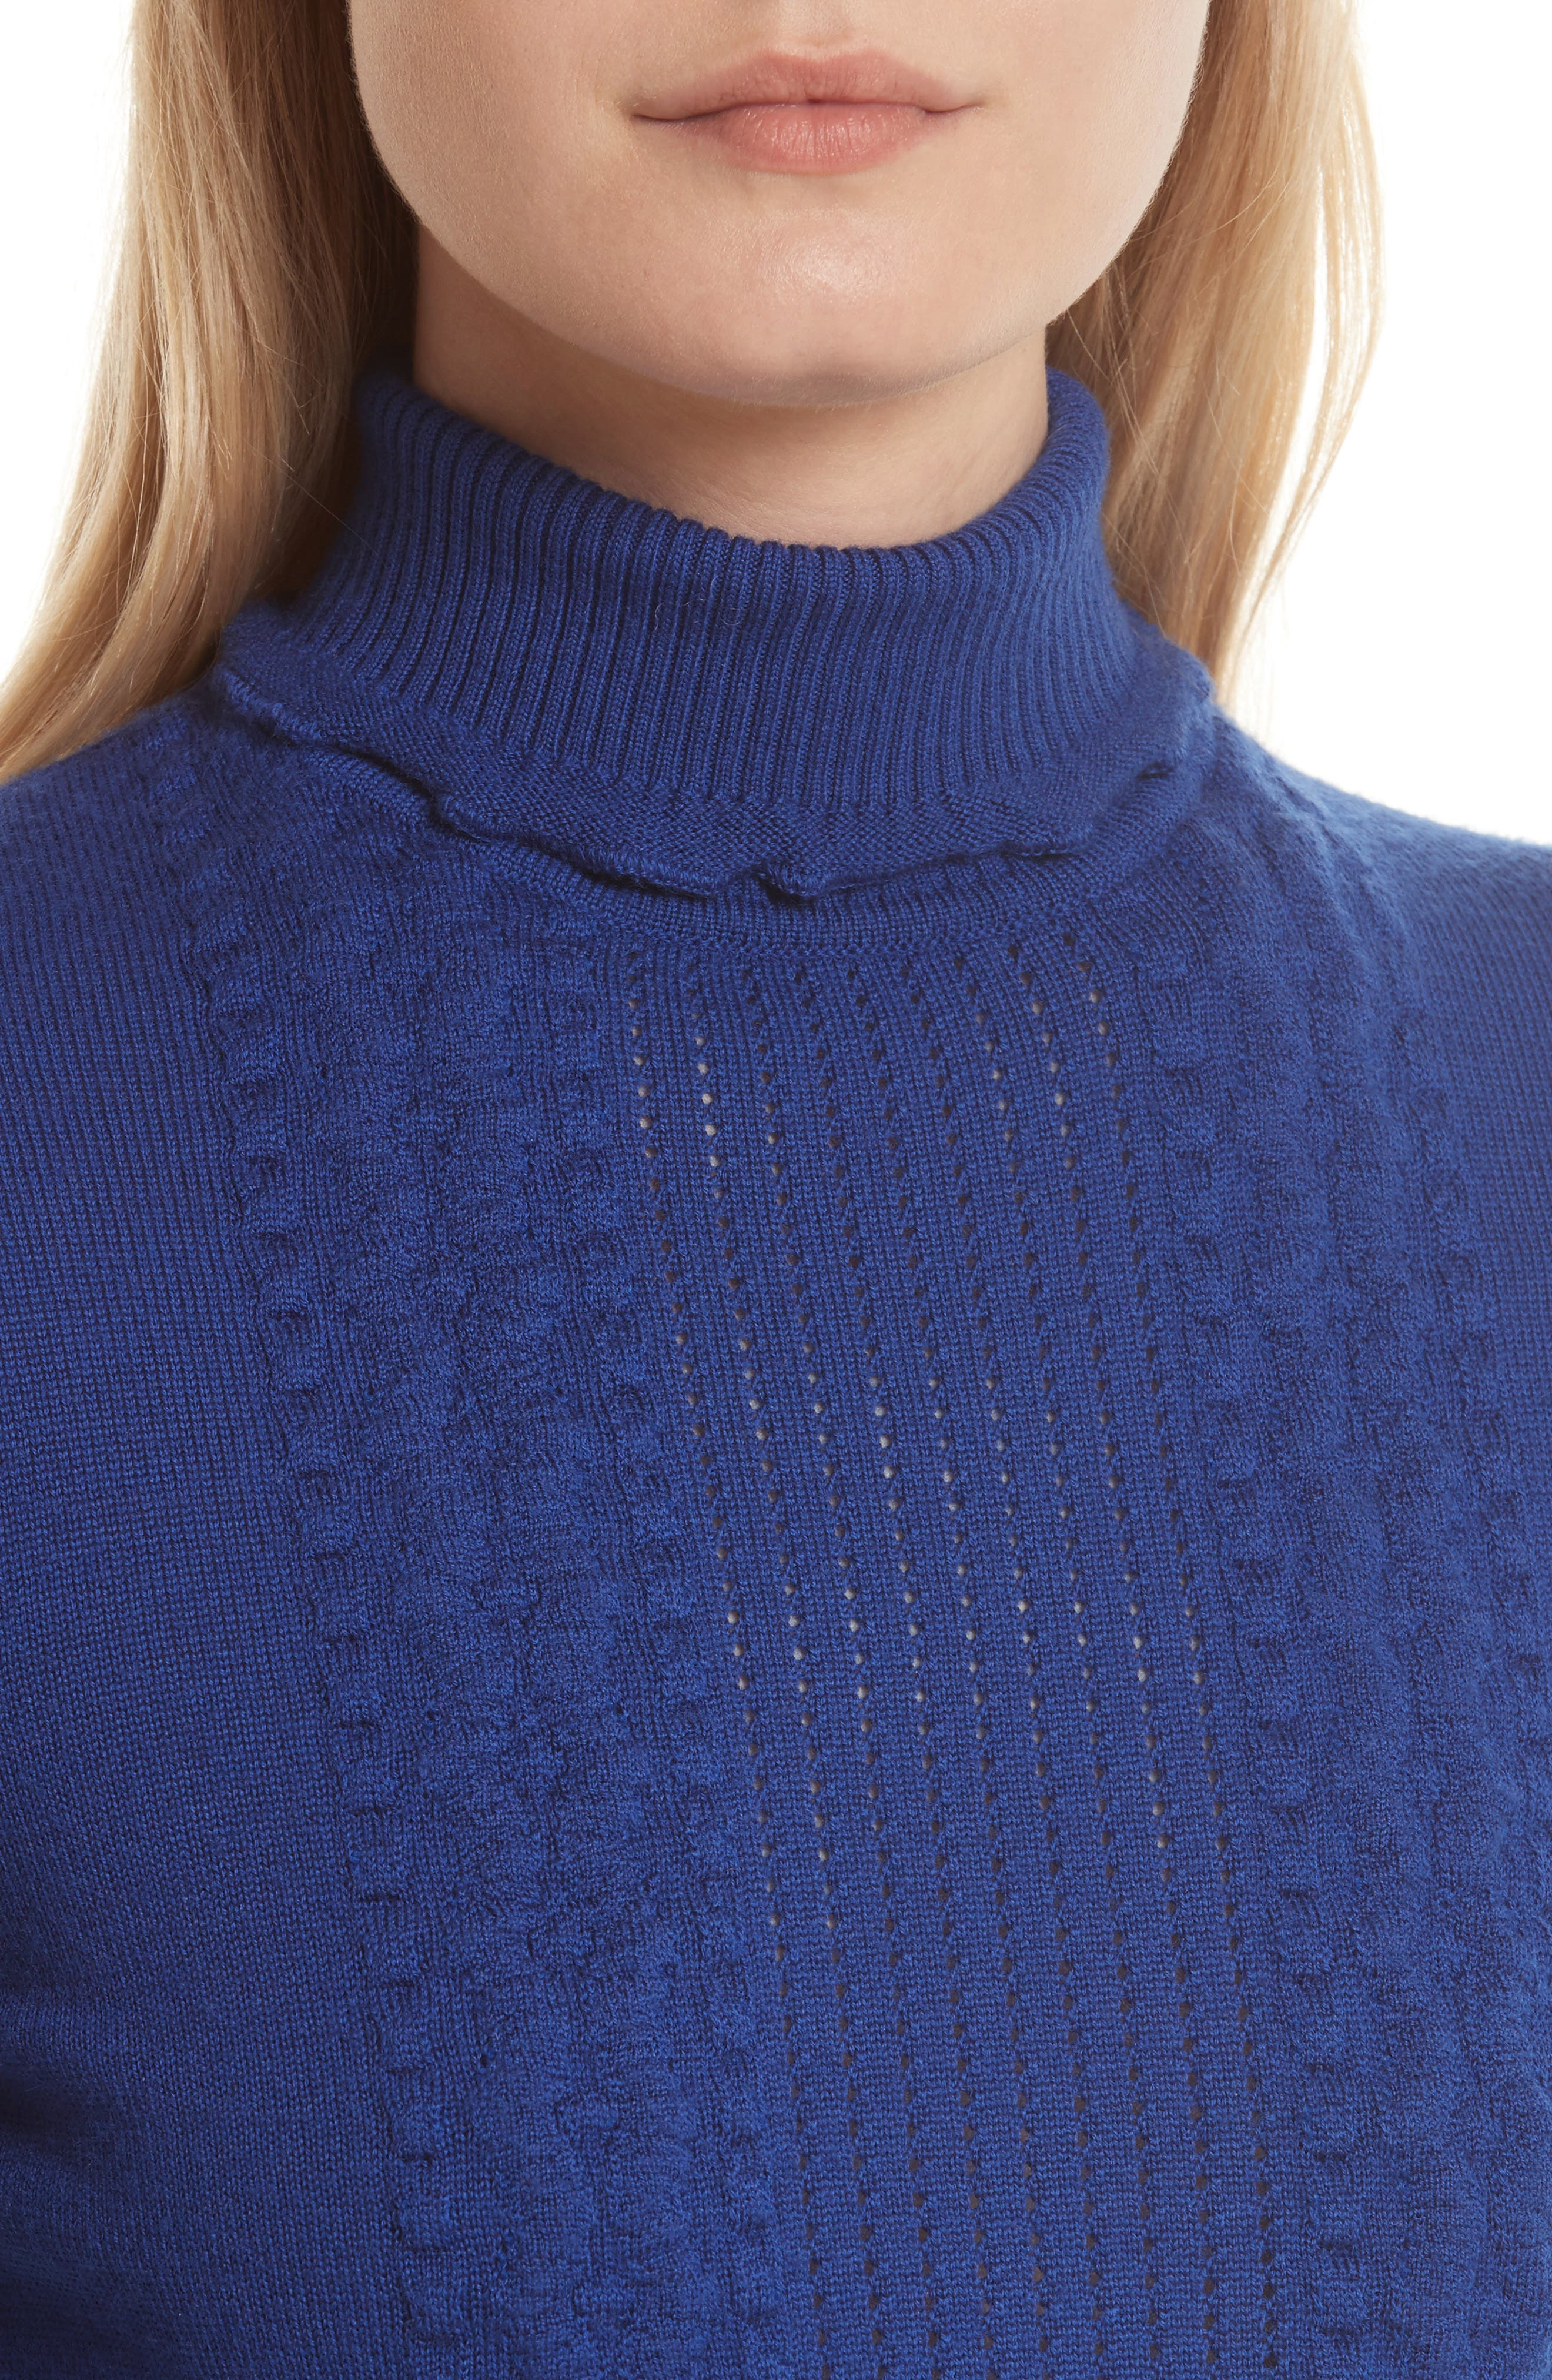 Puffy Cable Turtleneck Sweater,                             Alternate thumbnail 4, color,                             430